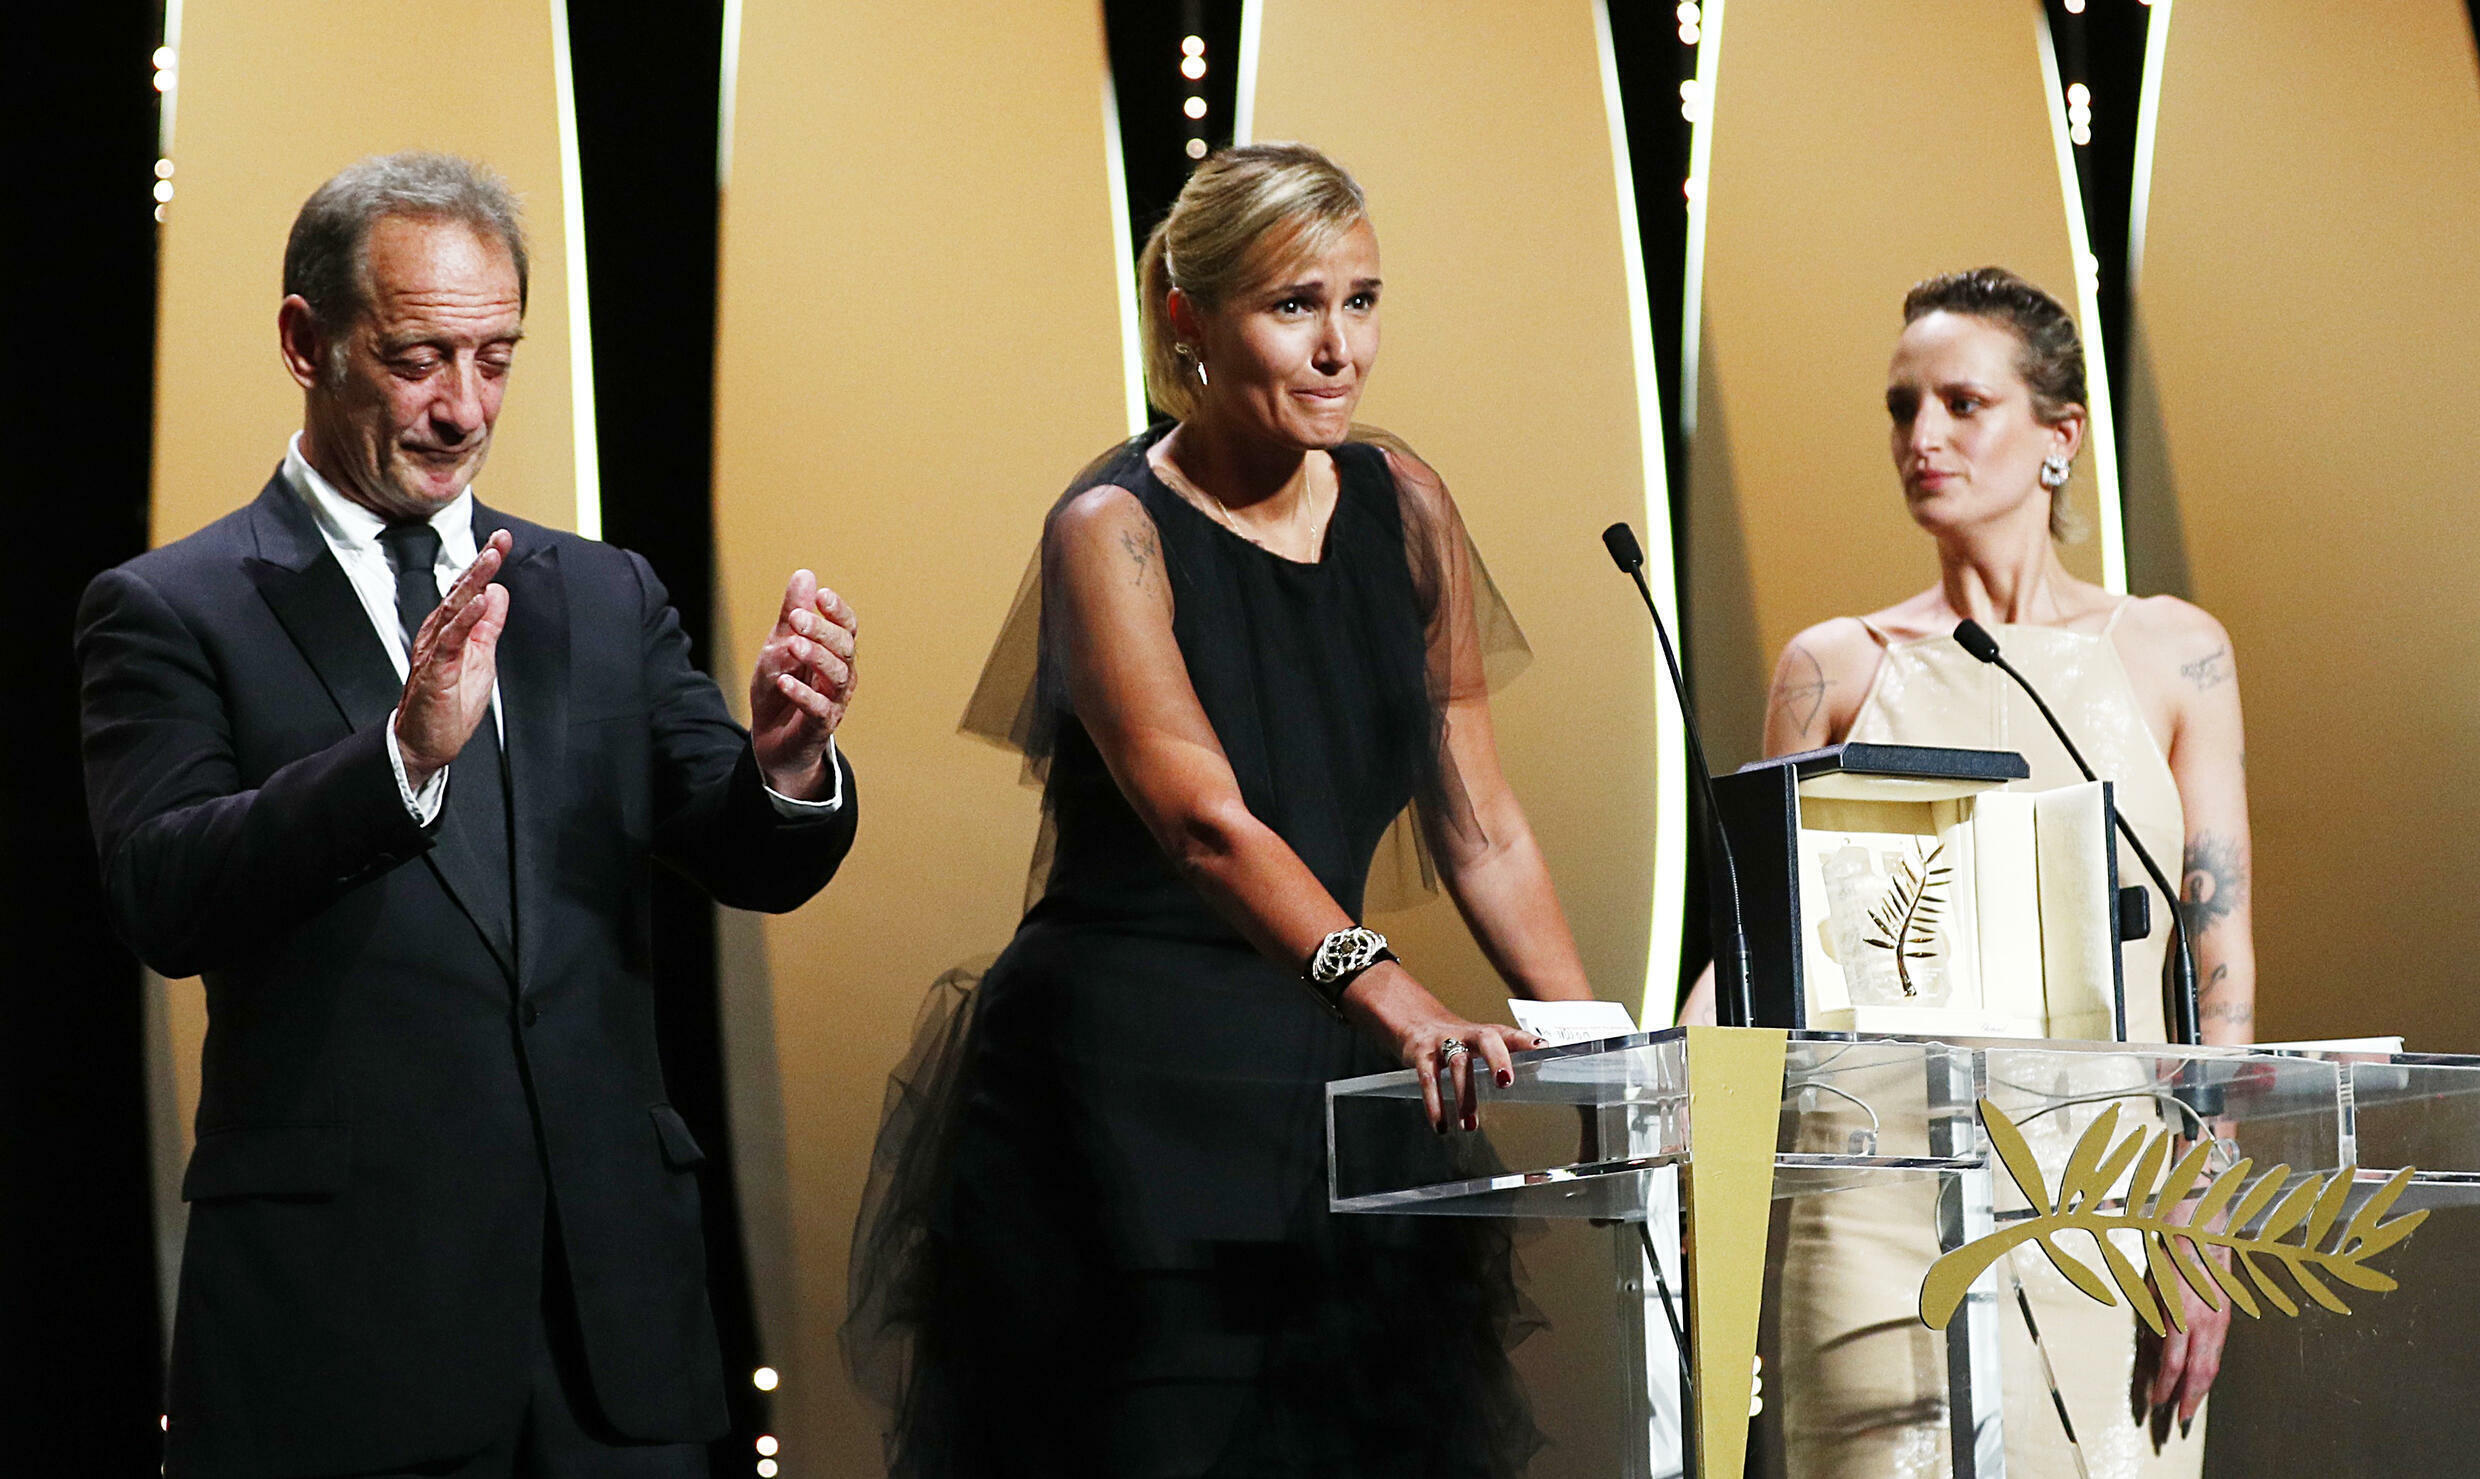 2021-07-17T191043Z_843793636_UP1EH7H1H9TYV_RTRMADP_3_FILMFESTIVAL-CANNES-AWARDS